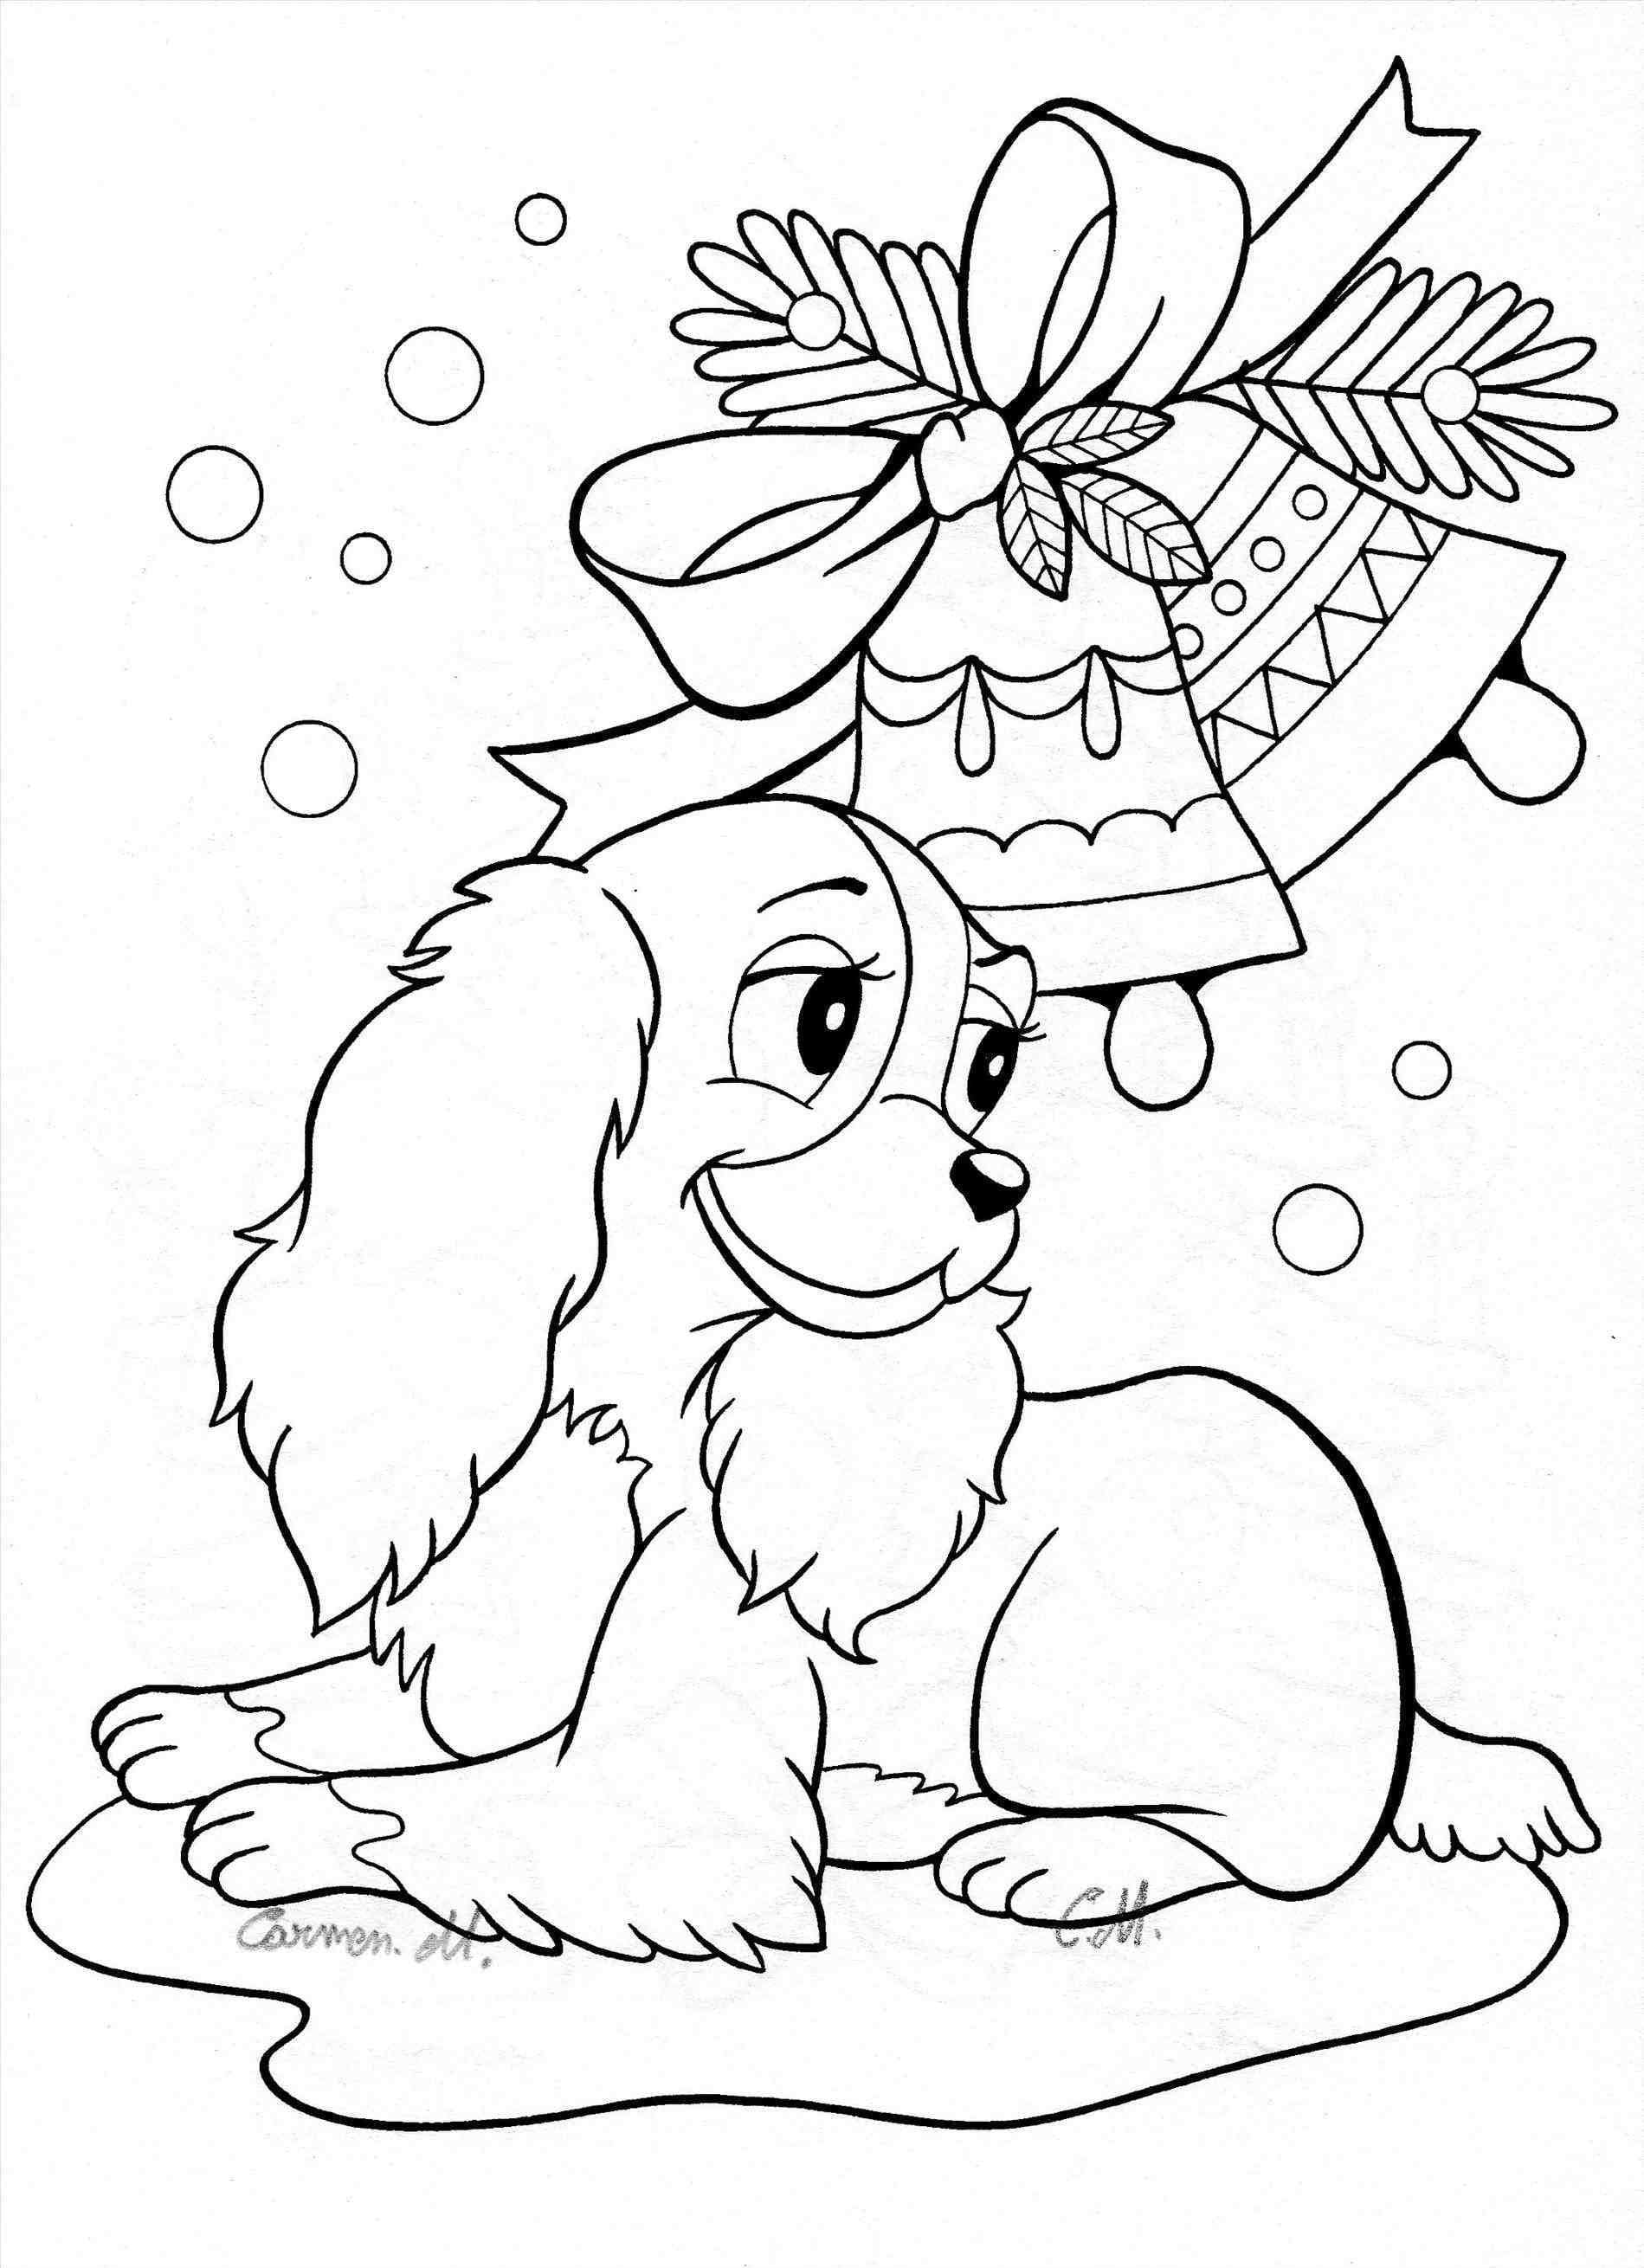 Christmas colouring in page of cute puppy dog